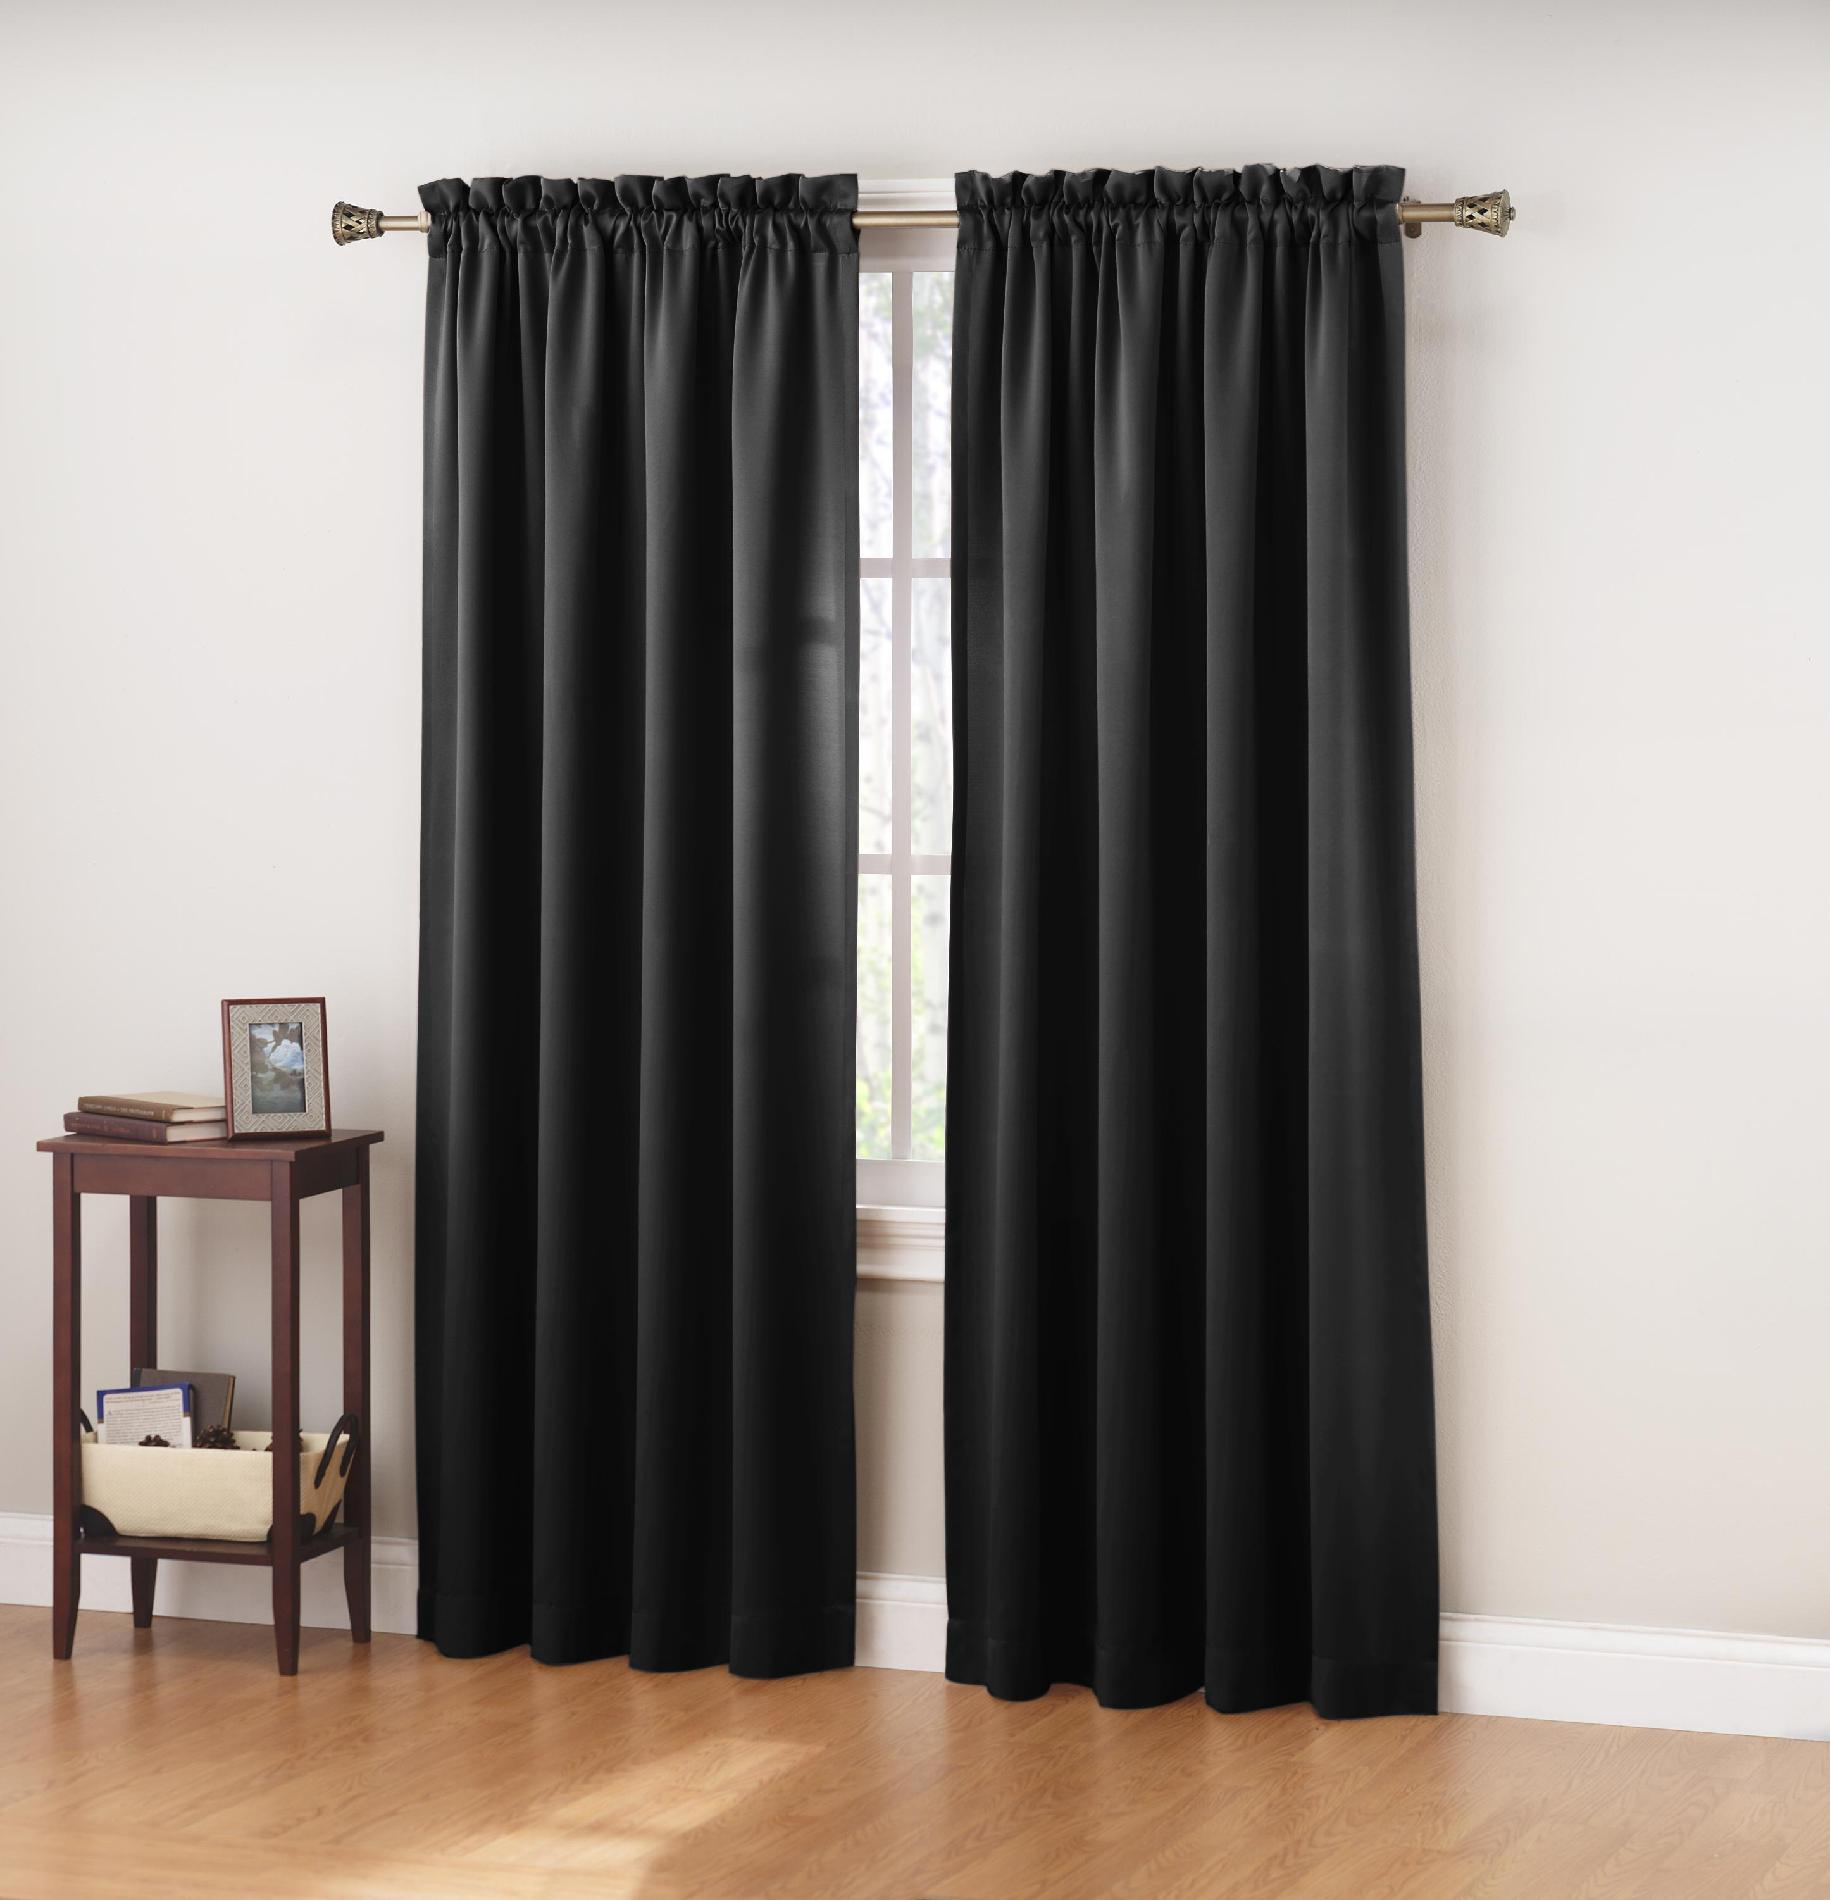 kmart living room curtains Curtains & Blinds | Kmart | Arty farty home | Pinterest | Living  192 X 192